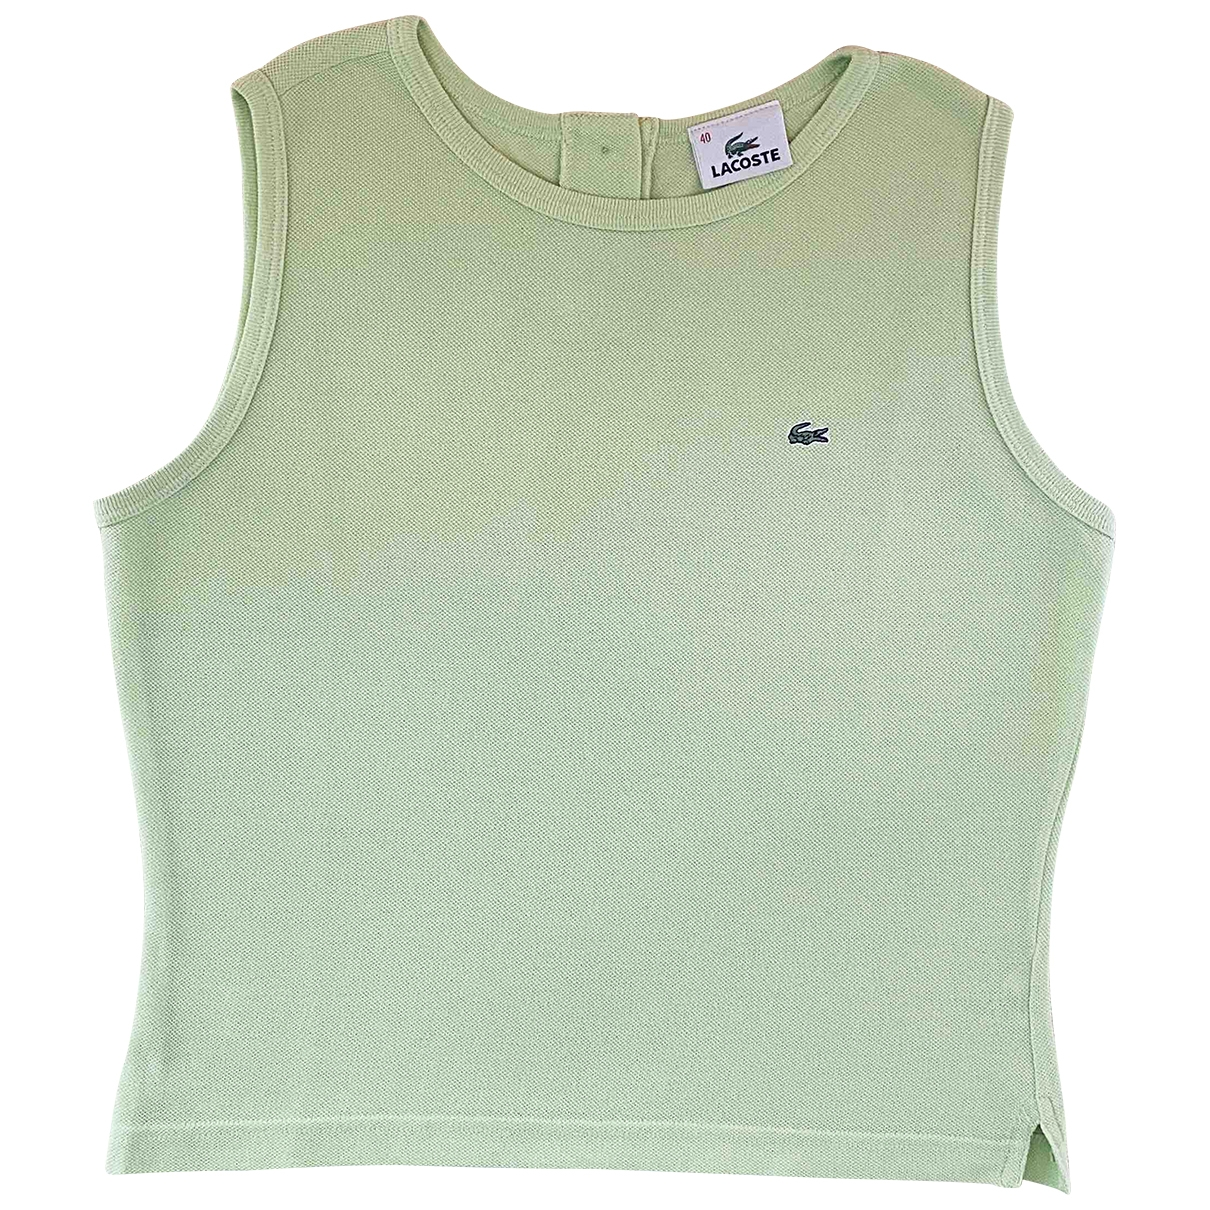 Lacoste \N Green Cotton  top for Women 40 FR